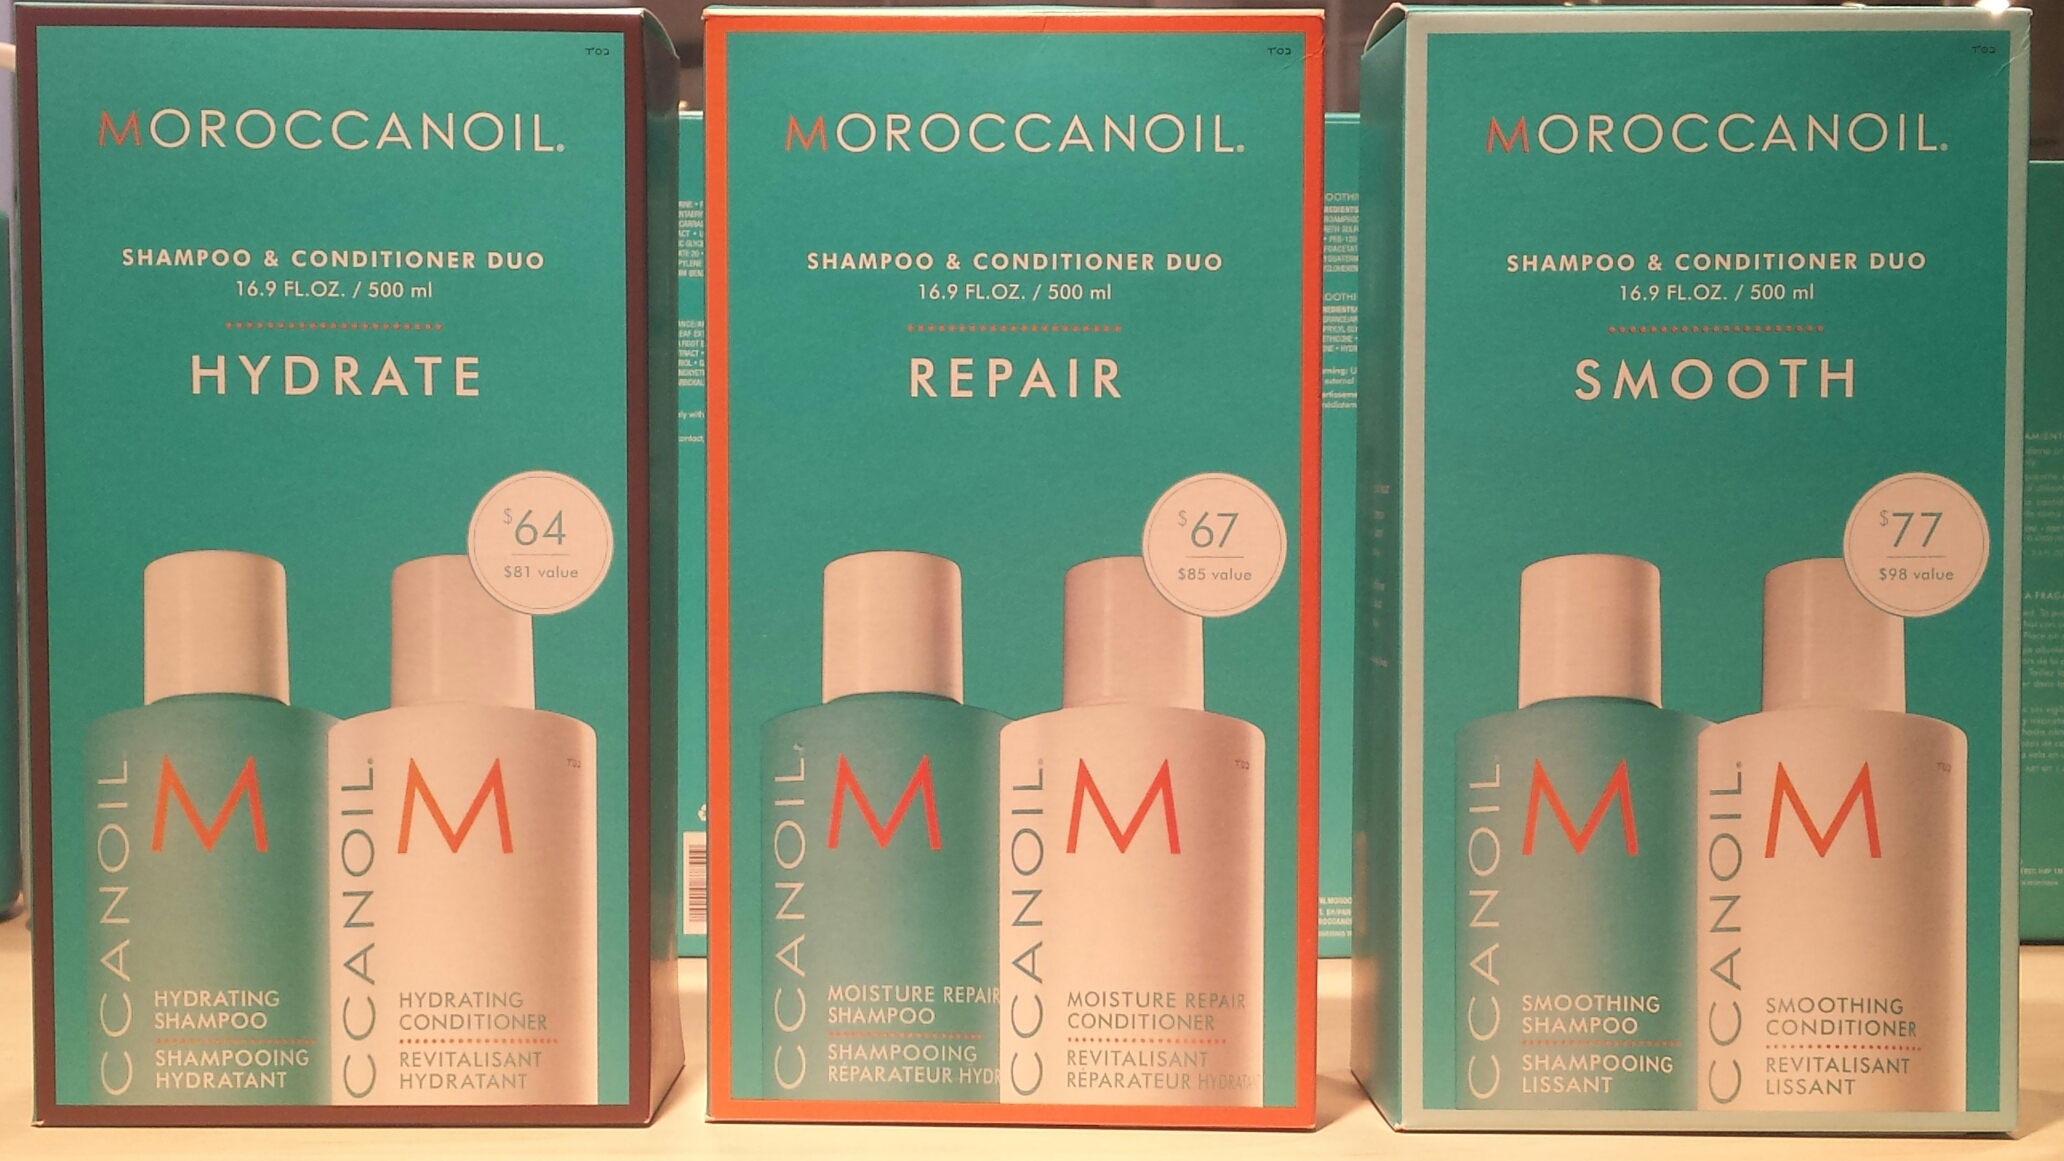 MoroccanOil and Aquage product lines